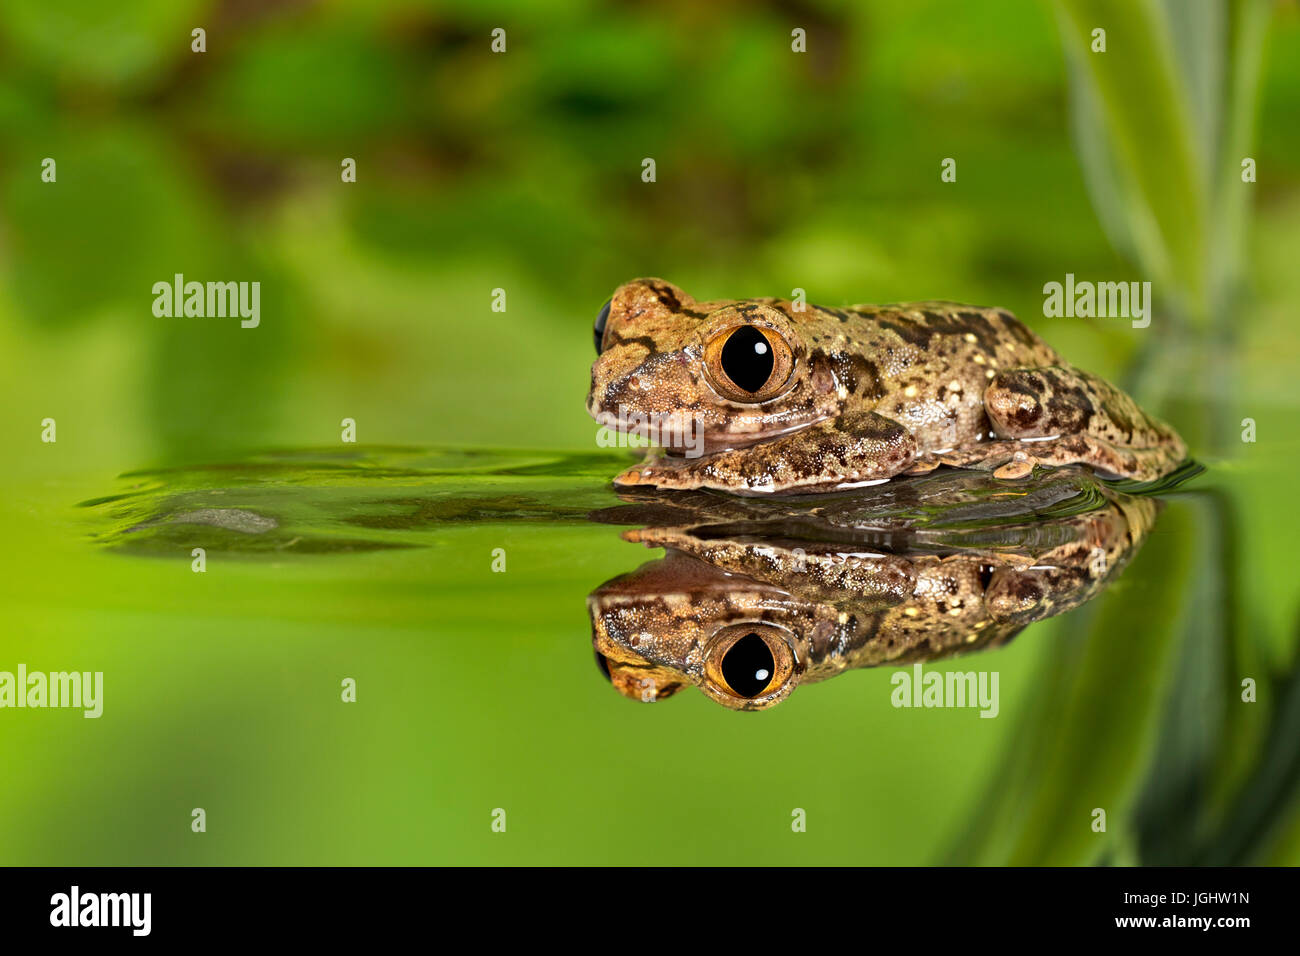 Big Eyed Forest Tree Frog - Stock Image